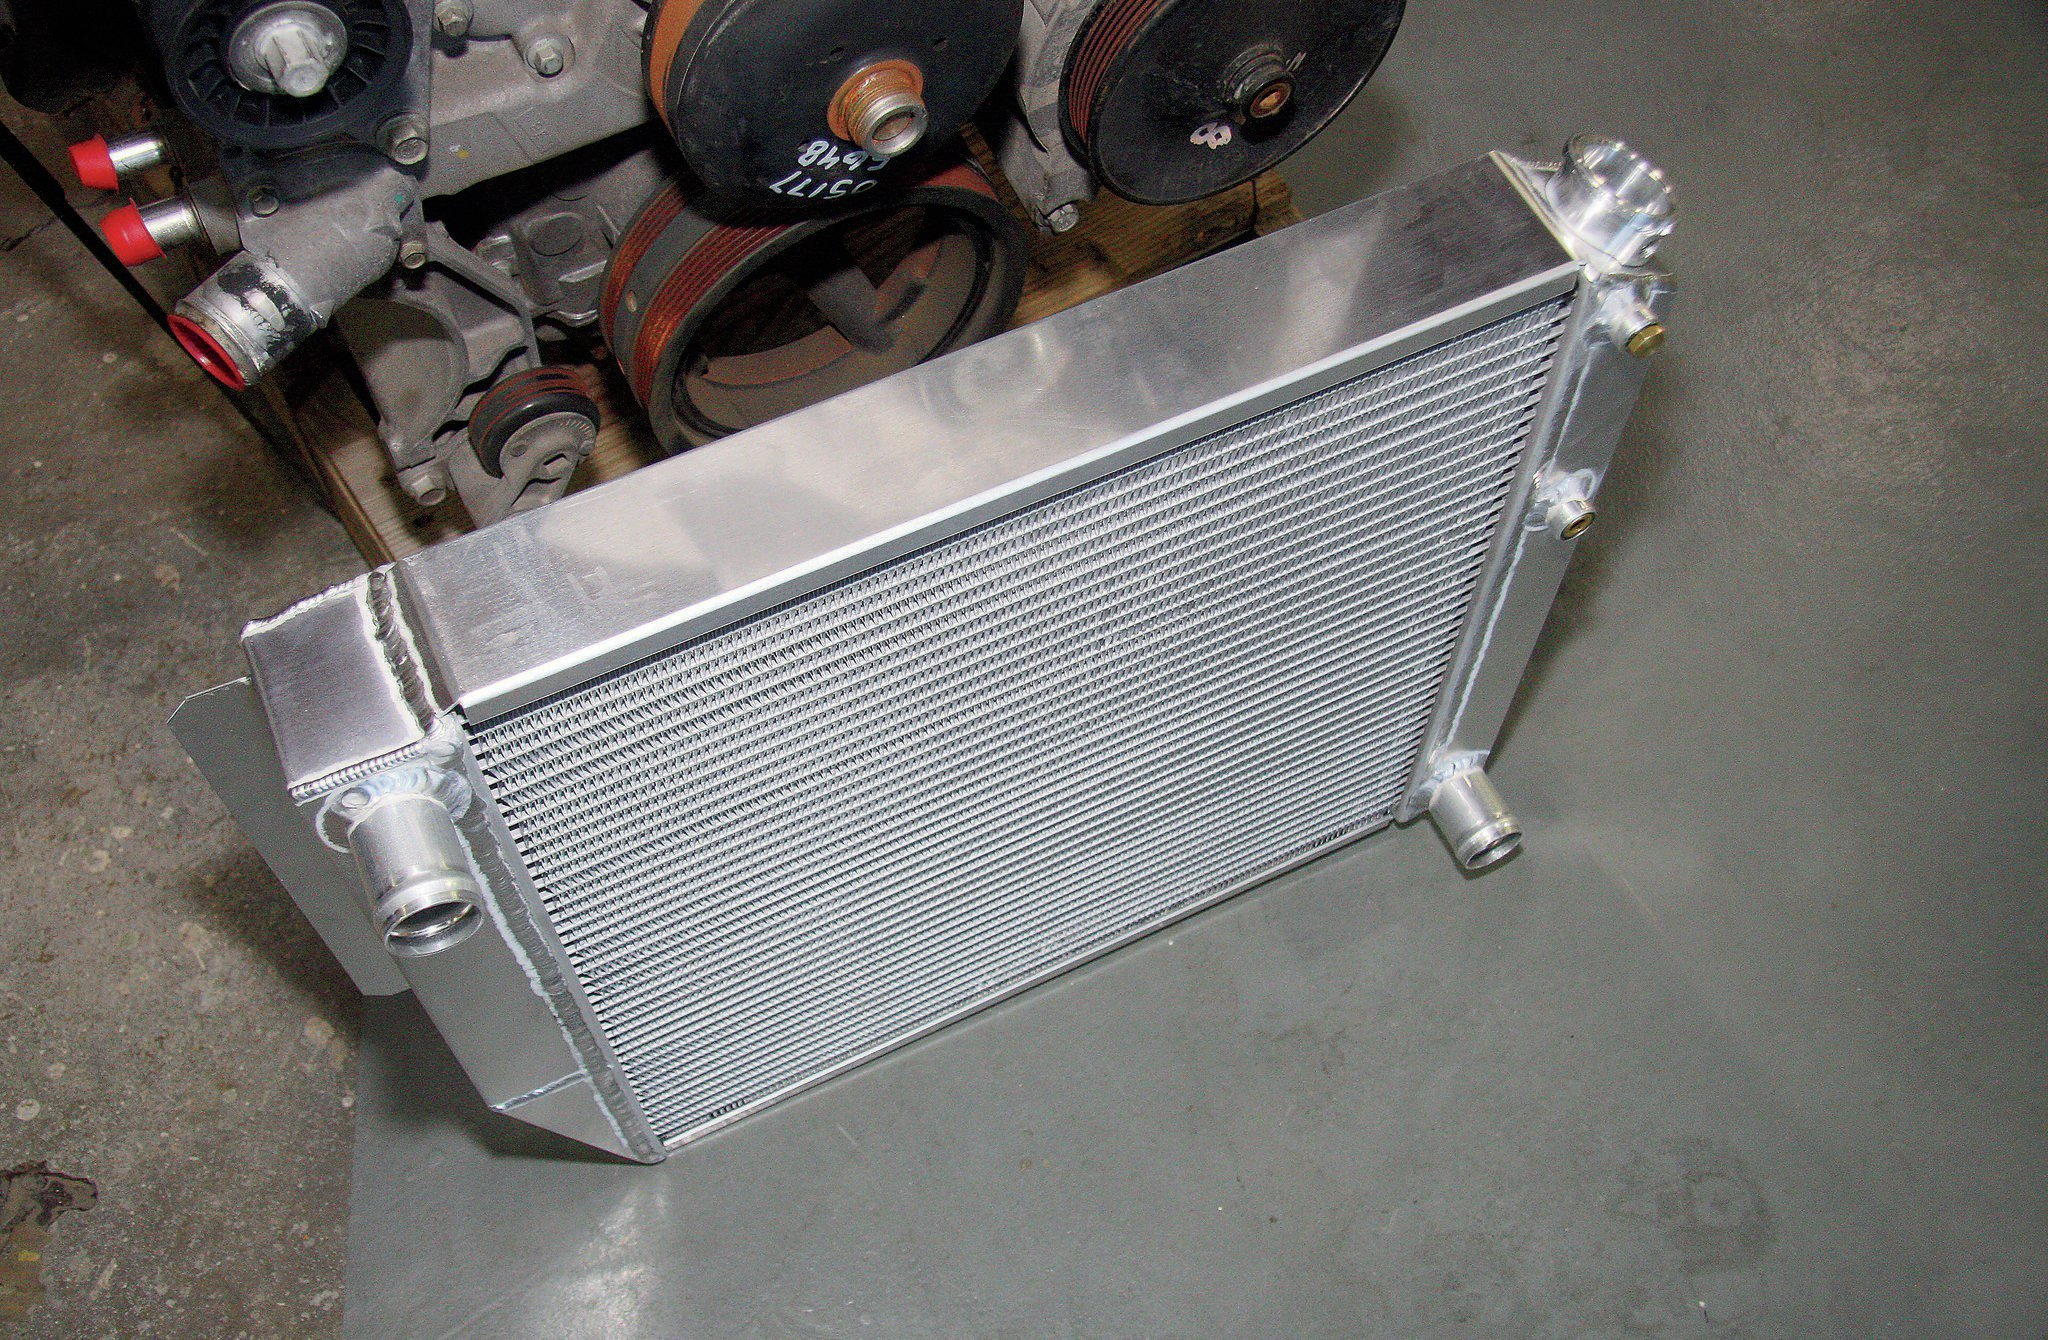 An Advance Adapters aluminum radiator was used that was designed specifically for this conversion, making it an easy bolt-in affair. The stock radiator is not up to the task of cooling the larger V-8 engine, plus all the outlets on this radiator have been placed to work with the GM LS engines.